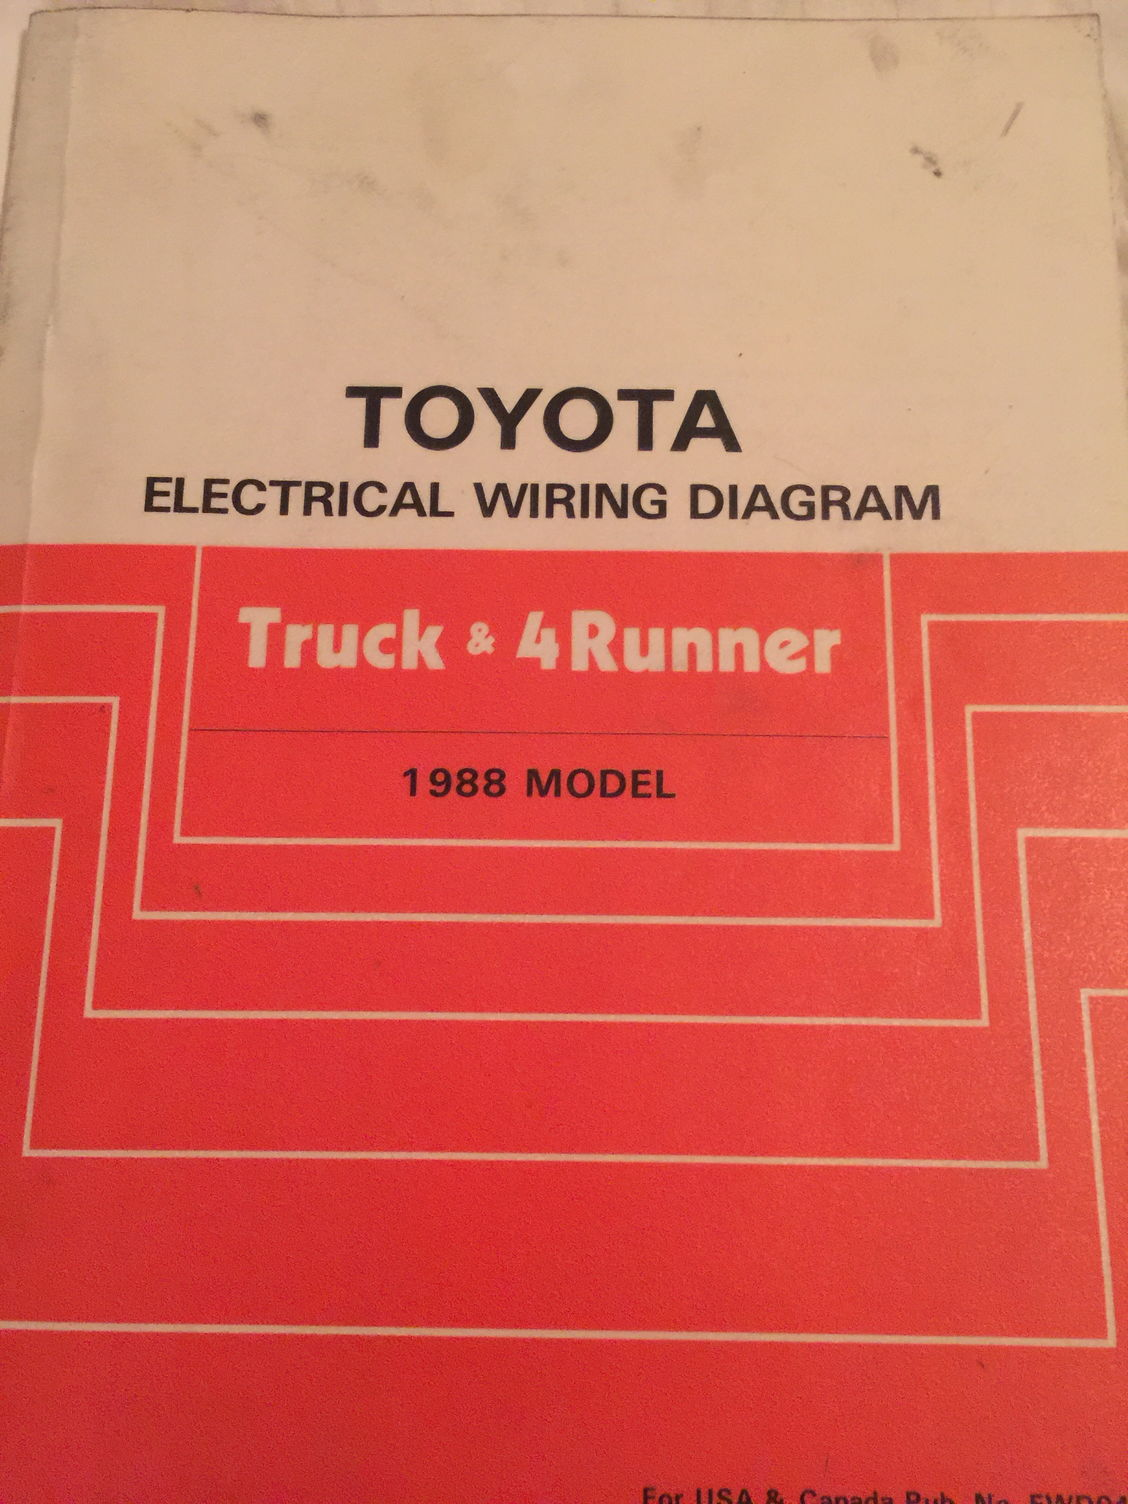 88 4runner Wiring Diagram Schematic Diagrams 1988 Toyota Truck Electrical Manual Trusted 2004